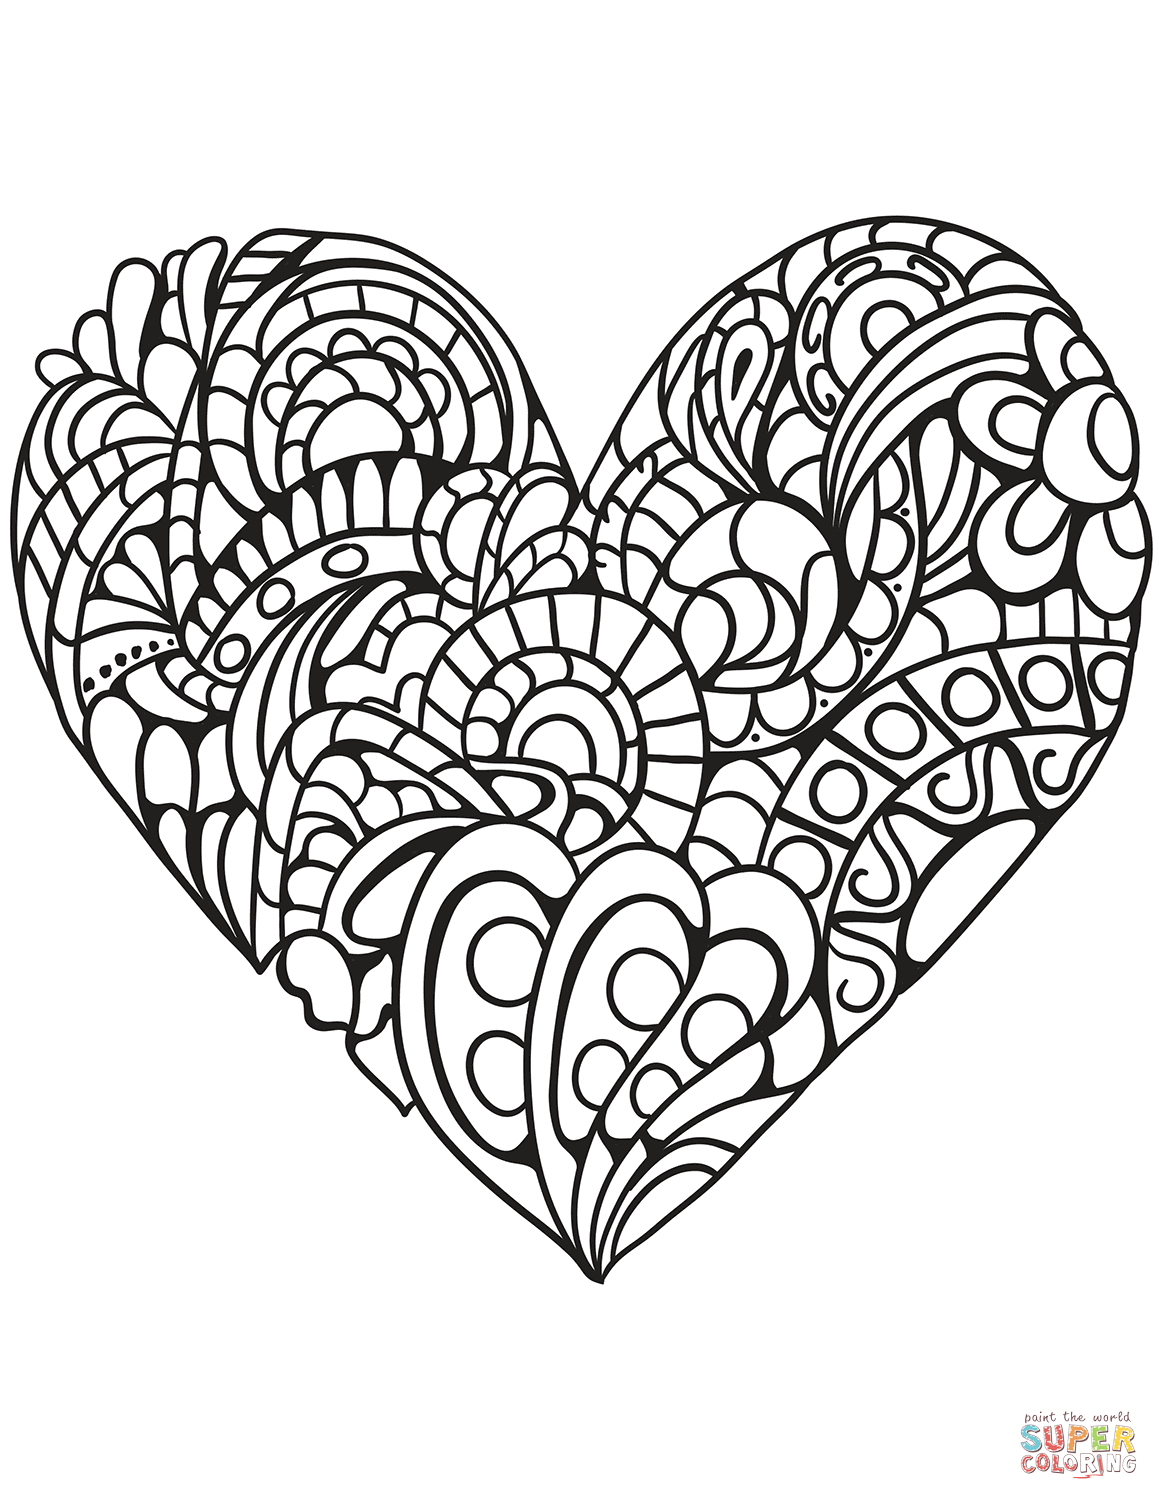 Heart Coloring Pages For Adults Coloring Page Doily Heart